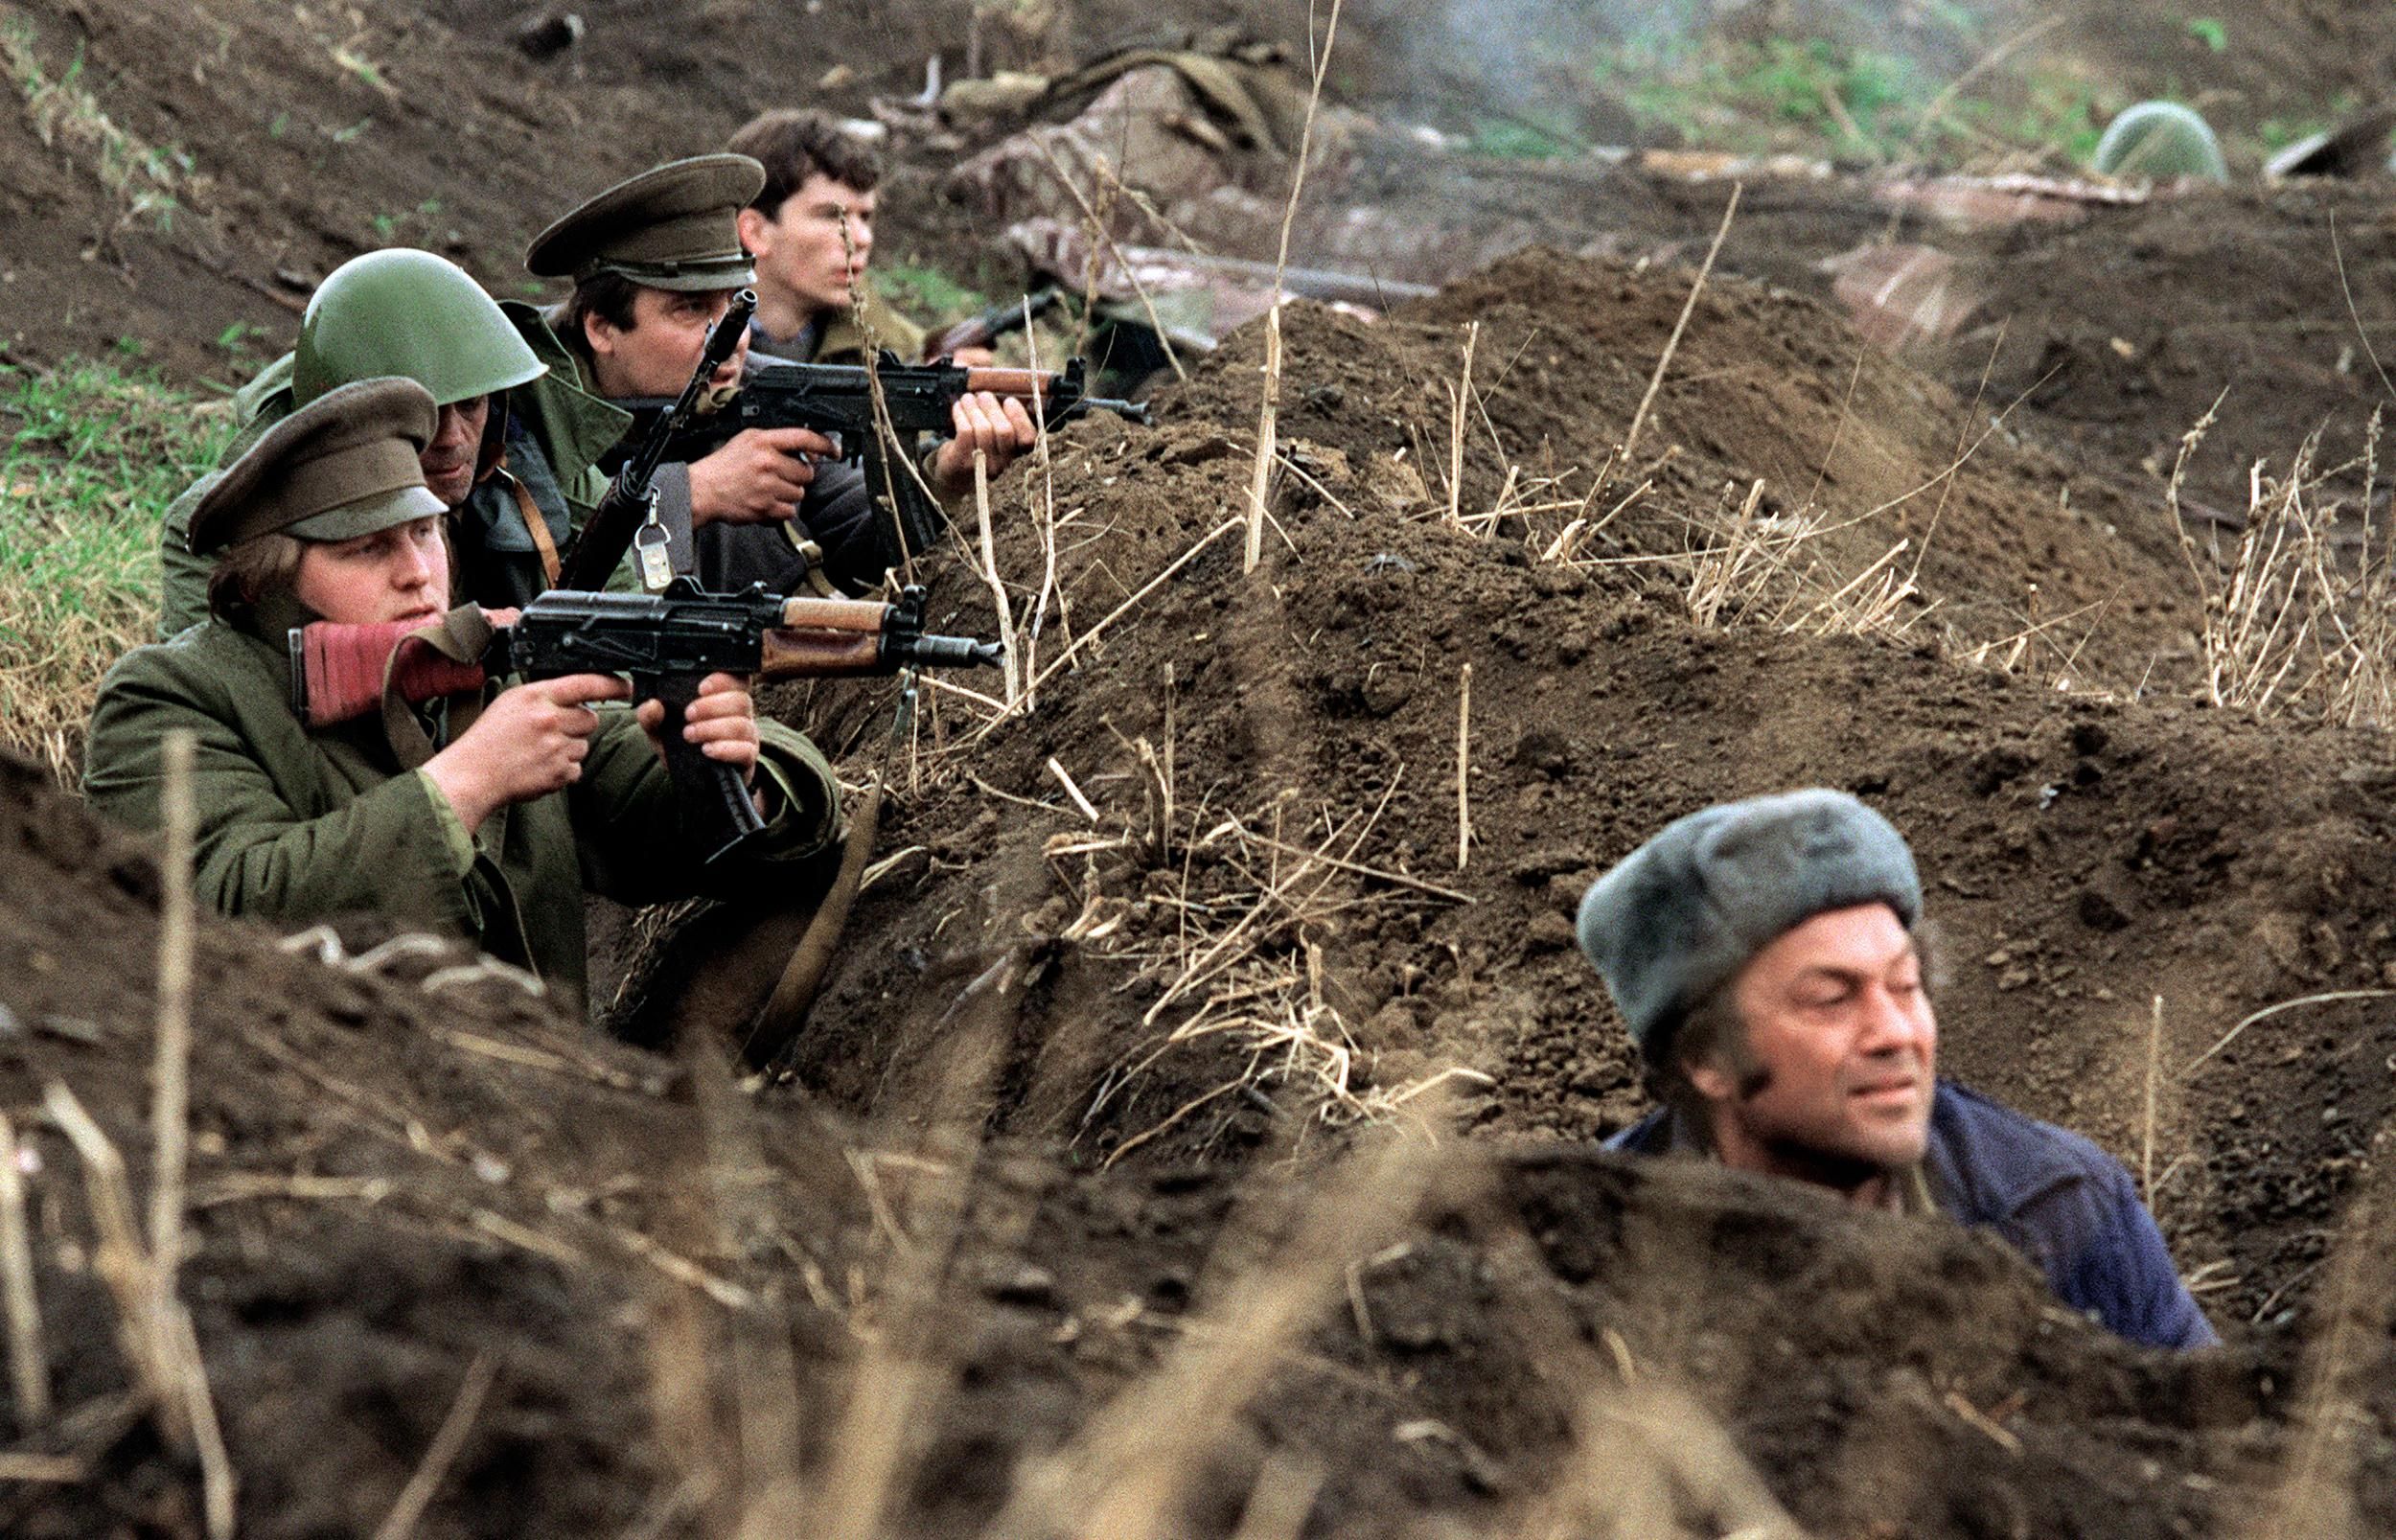 Image: Russian-speaking fighters of the newly proclaimed Trans-Dniester Republic and Cossacks shoot towards Moldovan soldiers on March 30, 1992